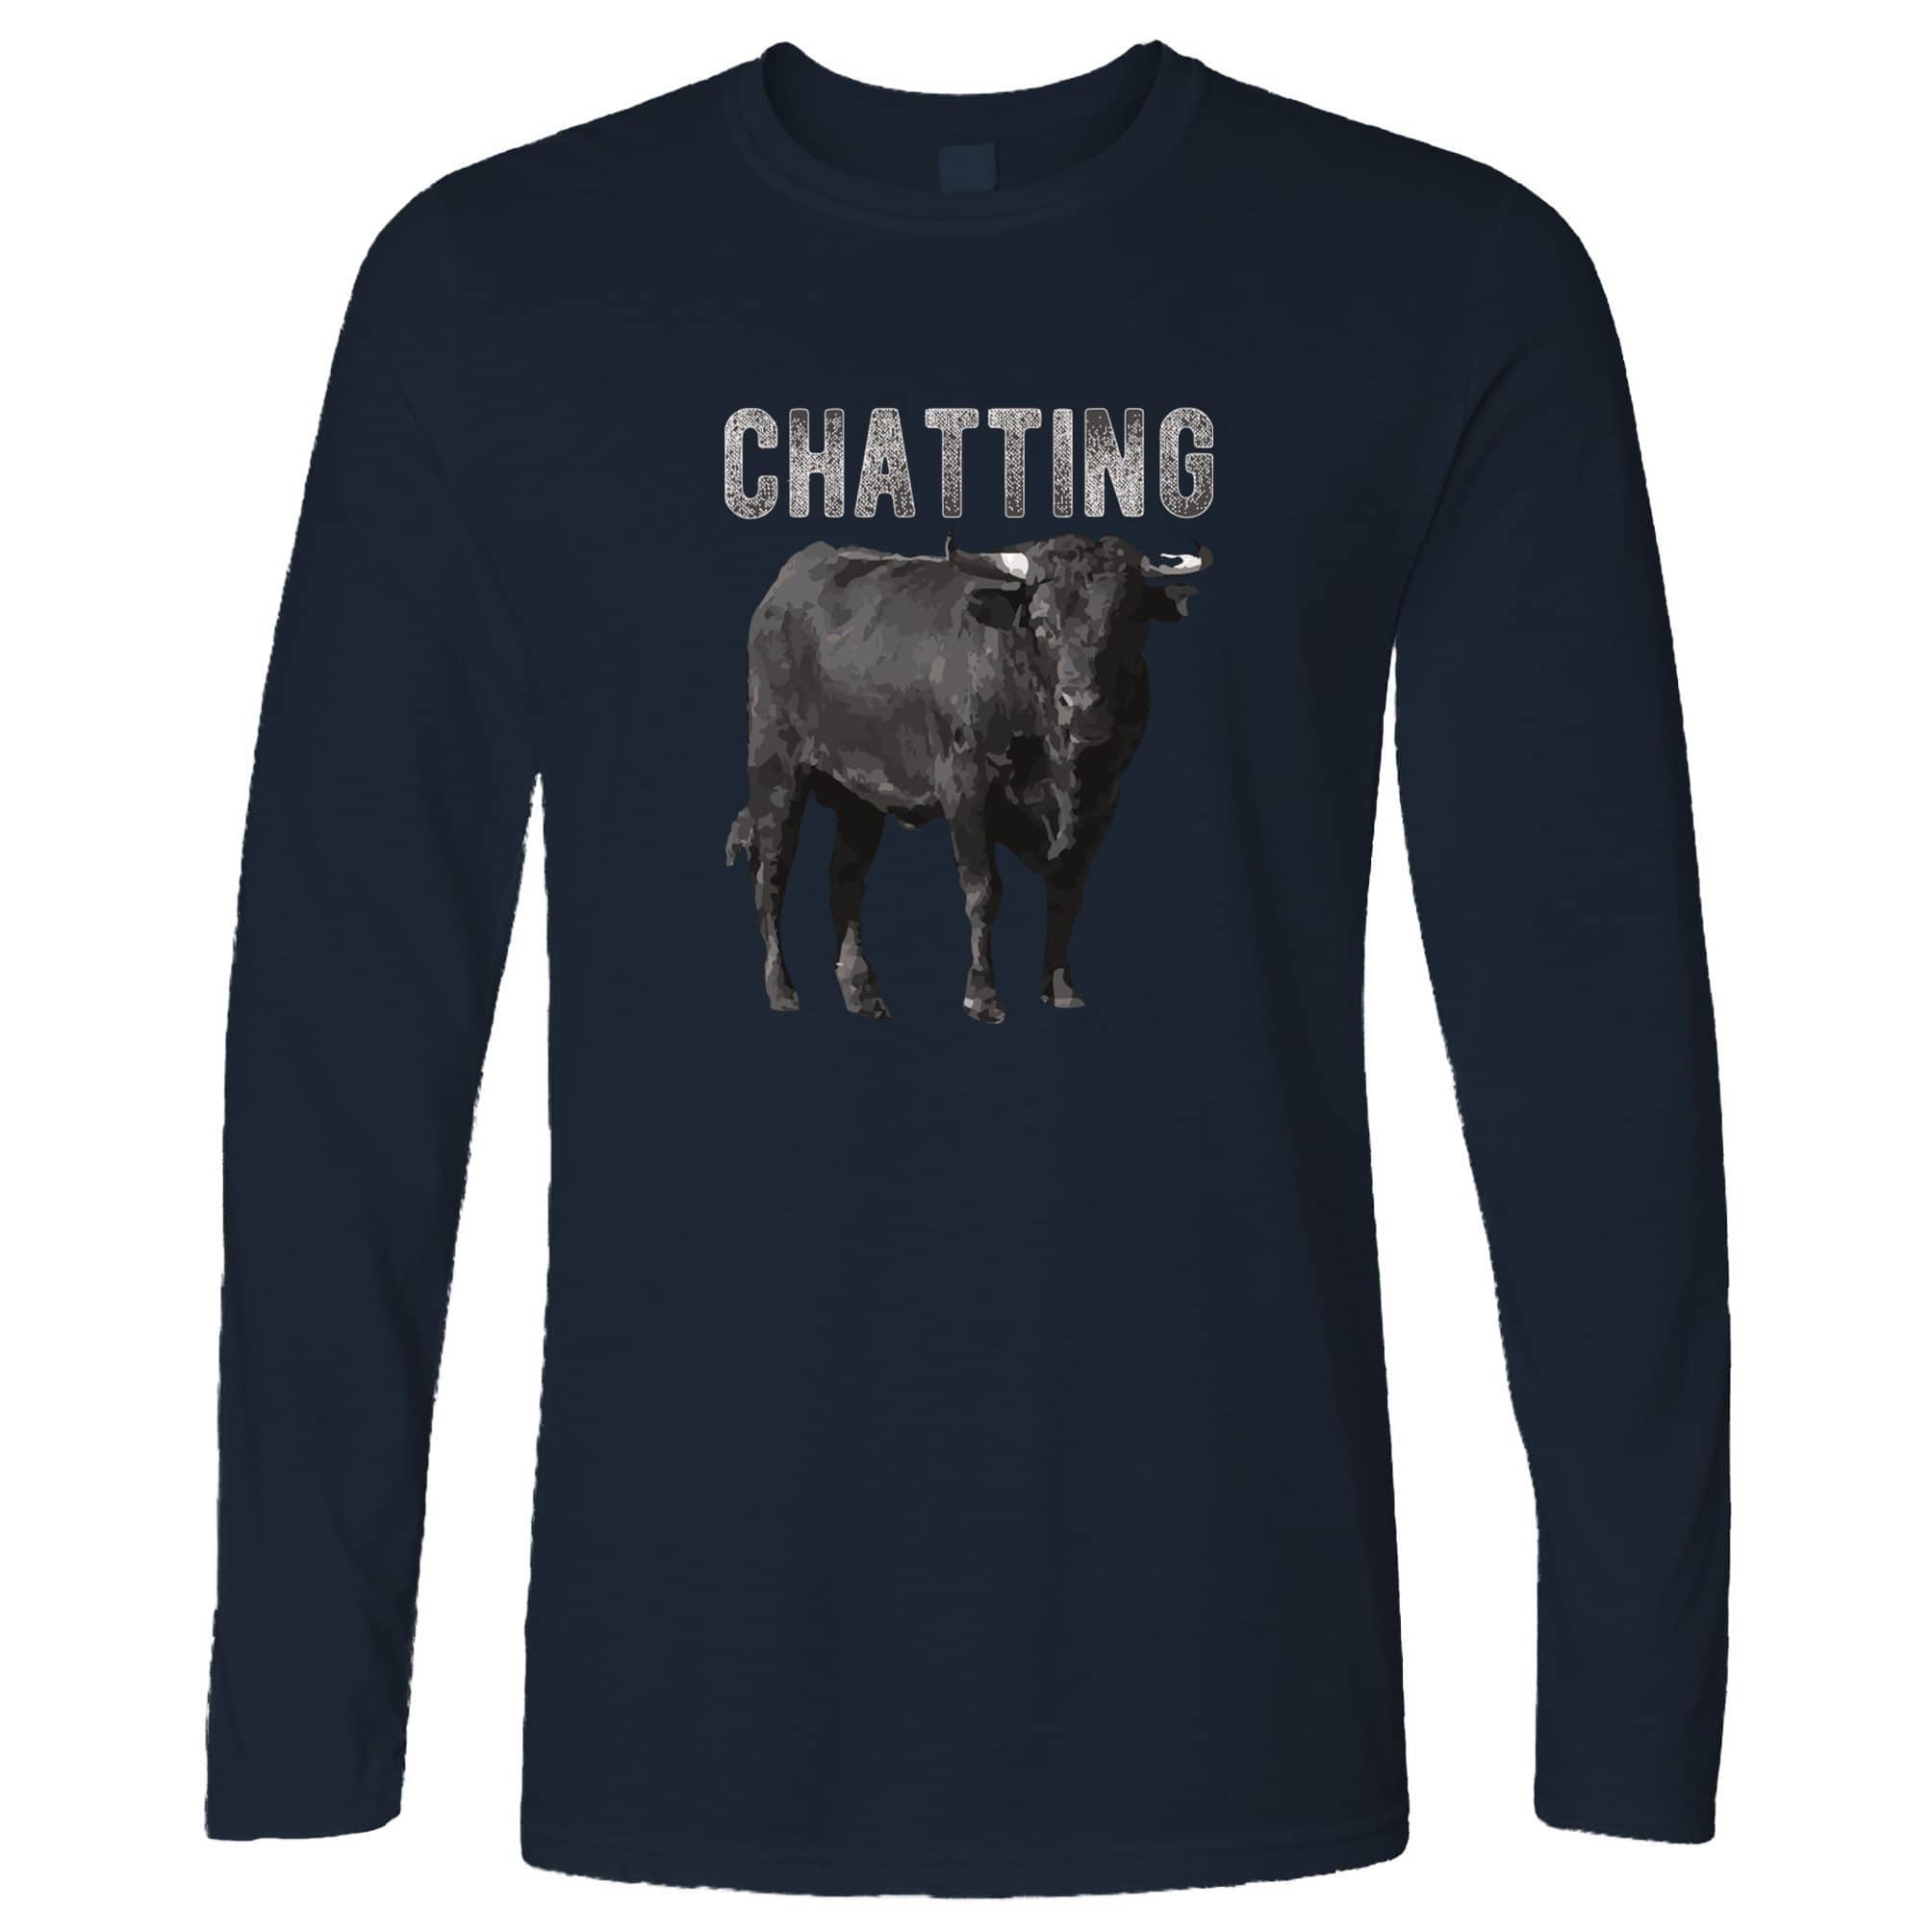 Bull Ox Long Sleeve Chatting Bullocks Joke T-Shirt